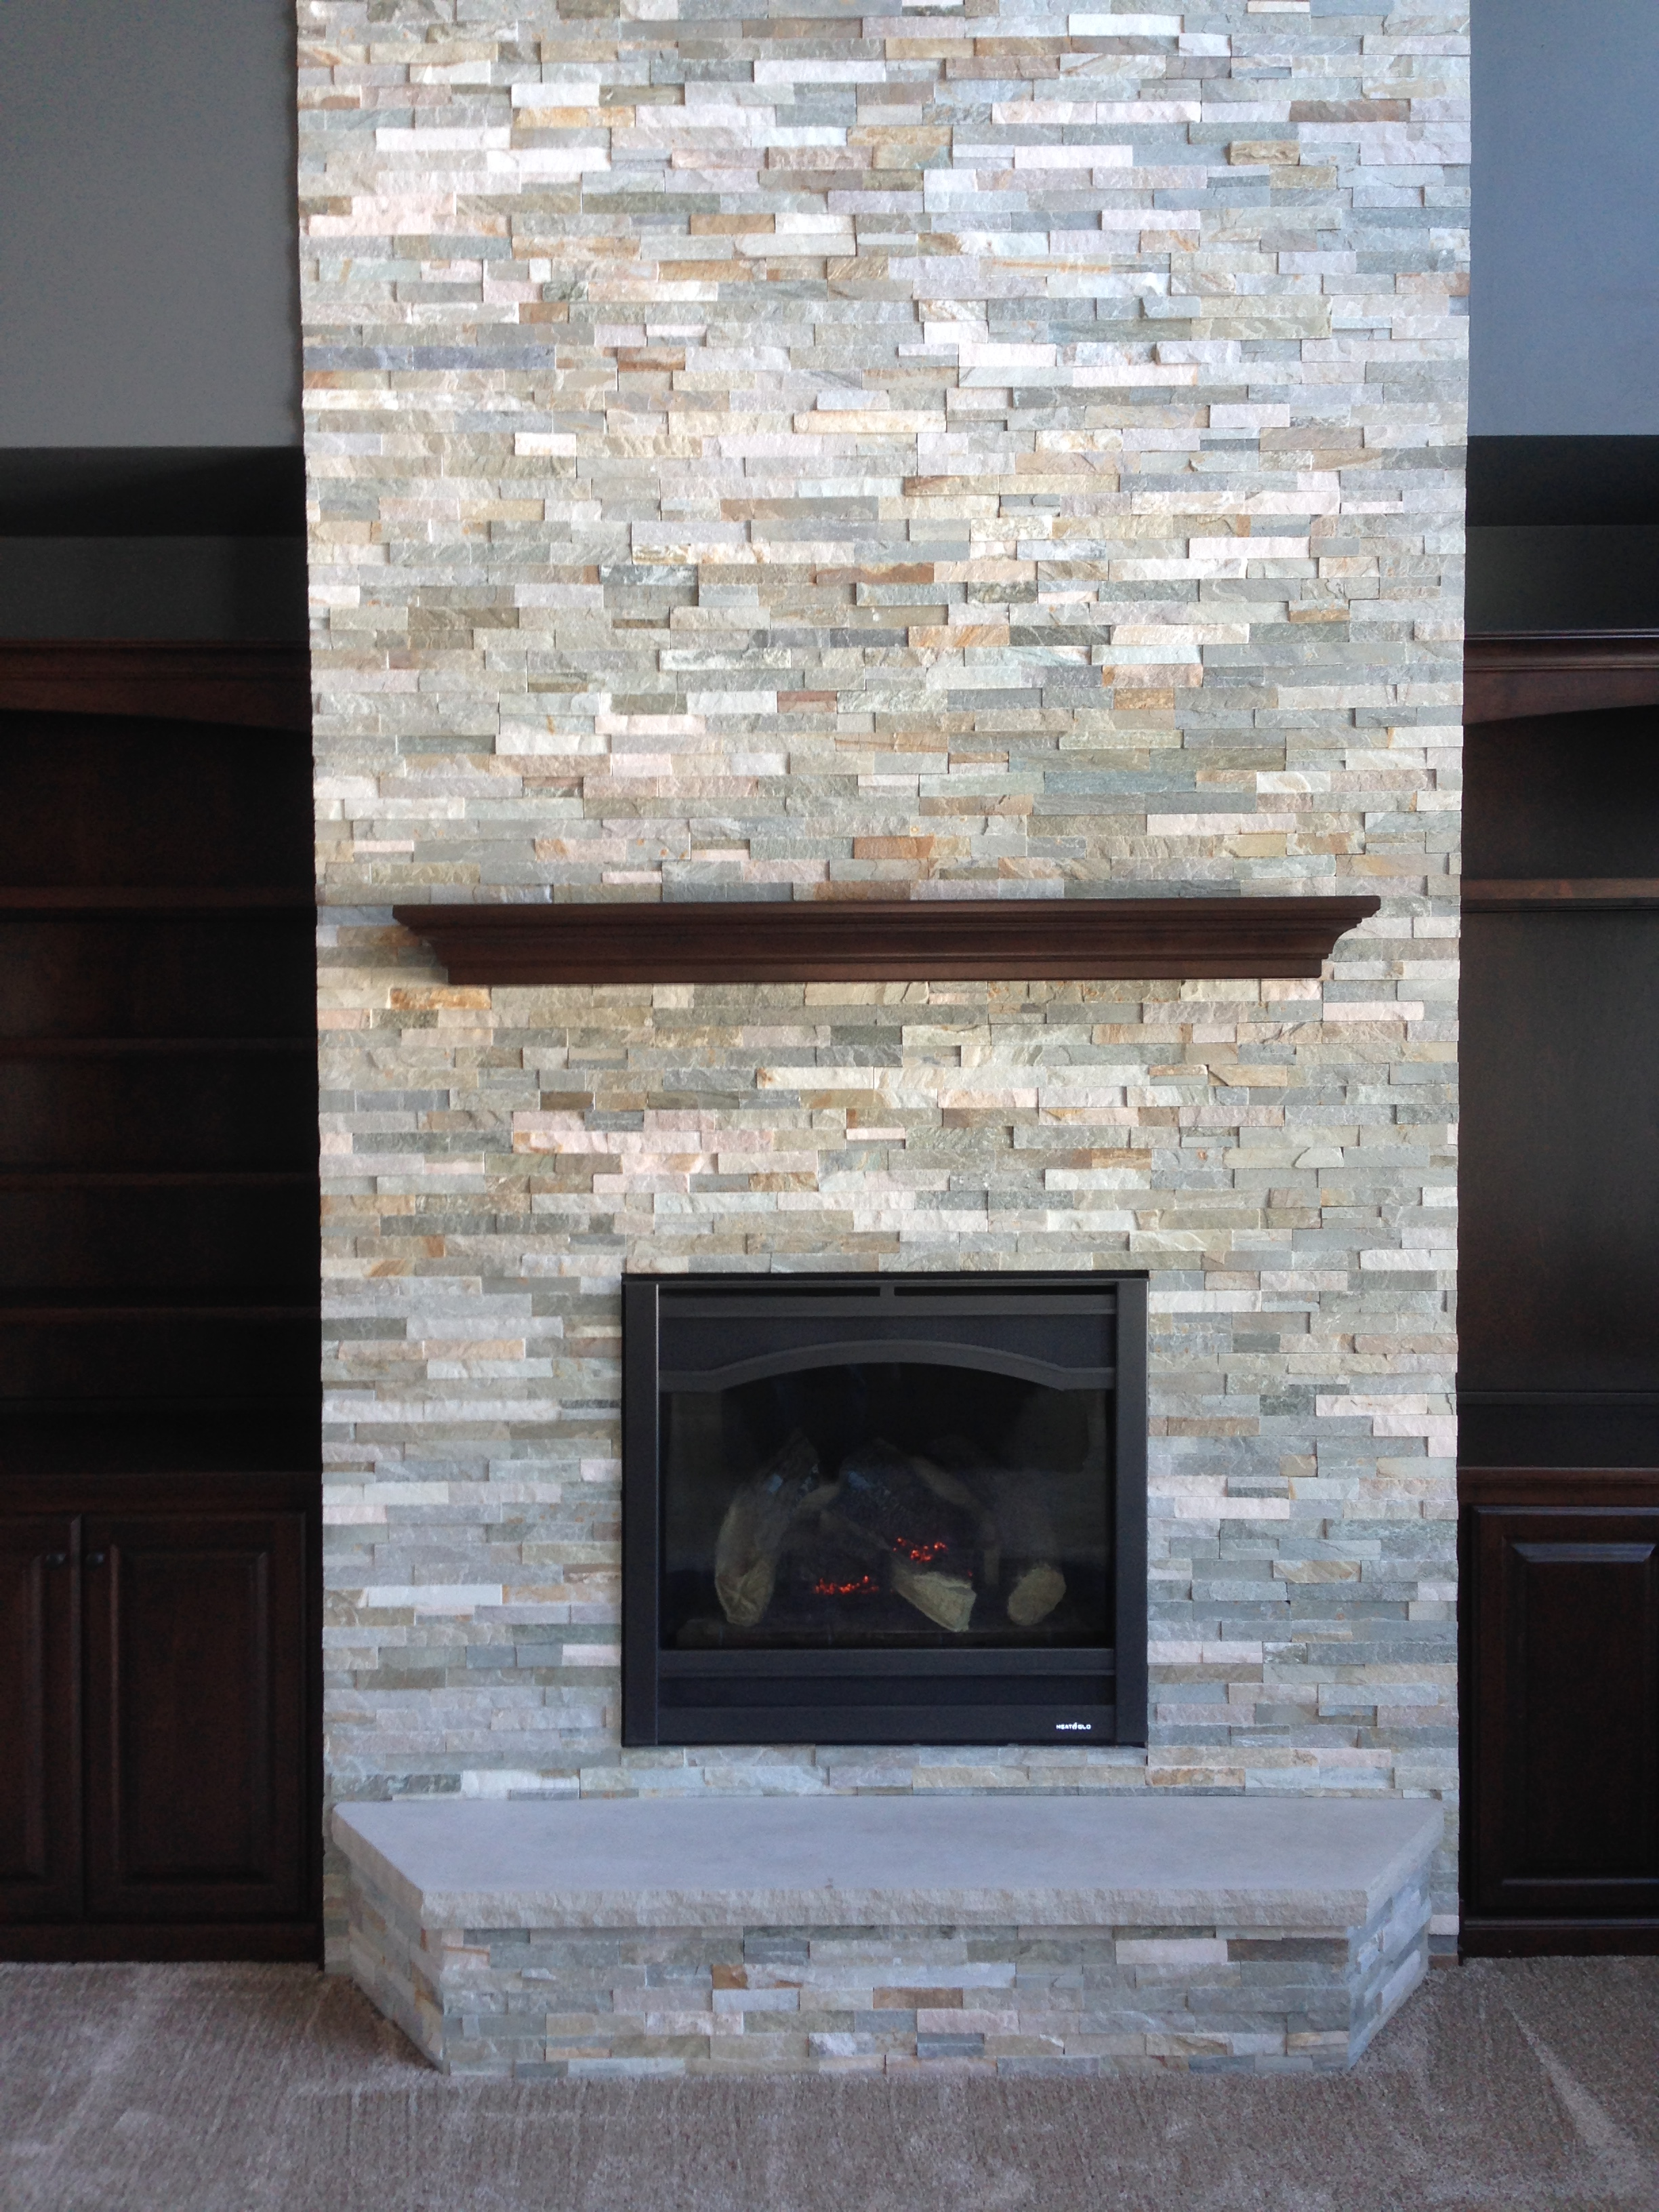 Brick Fireplaces Project Photos - Gagnon Clay Products